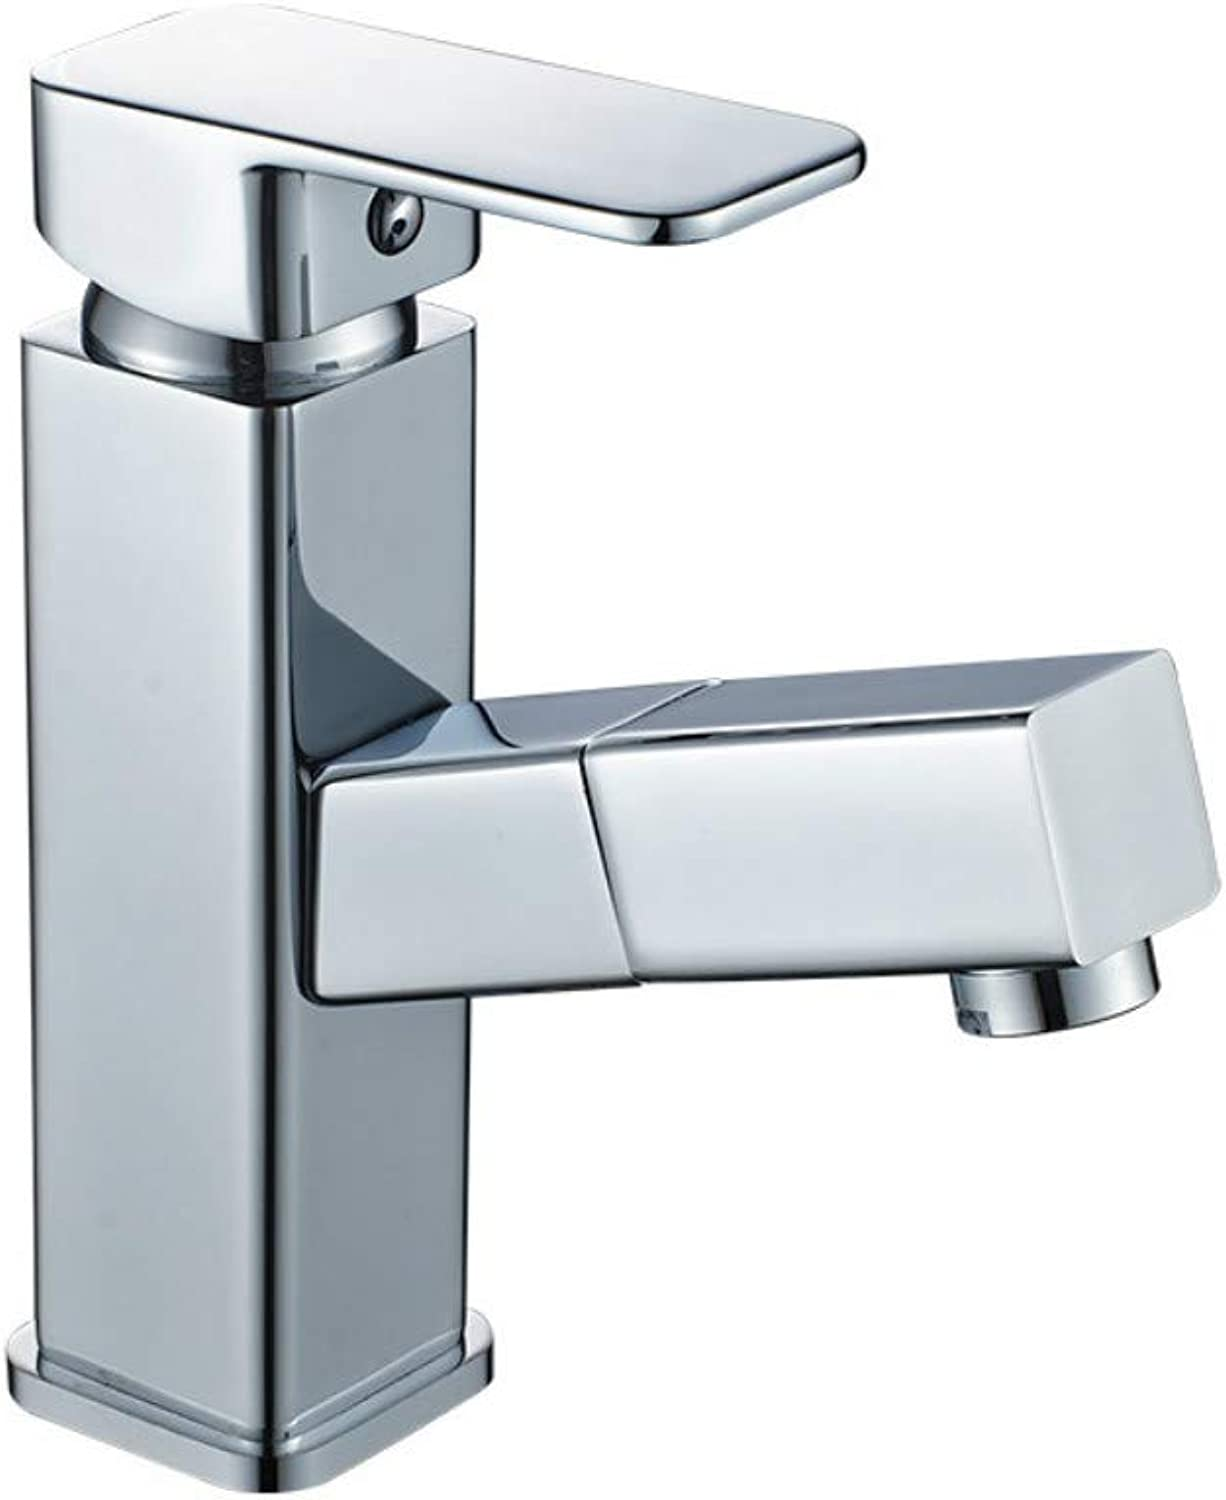 Cold and hot washbasin Faucet Cuboid Pulling Faucet